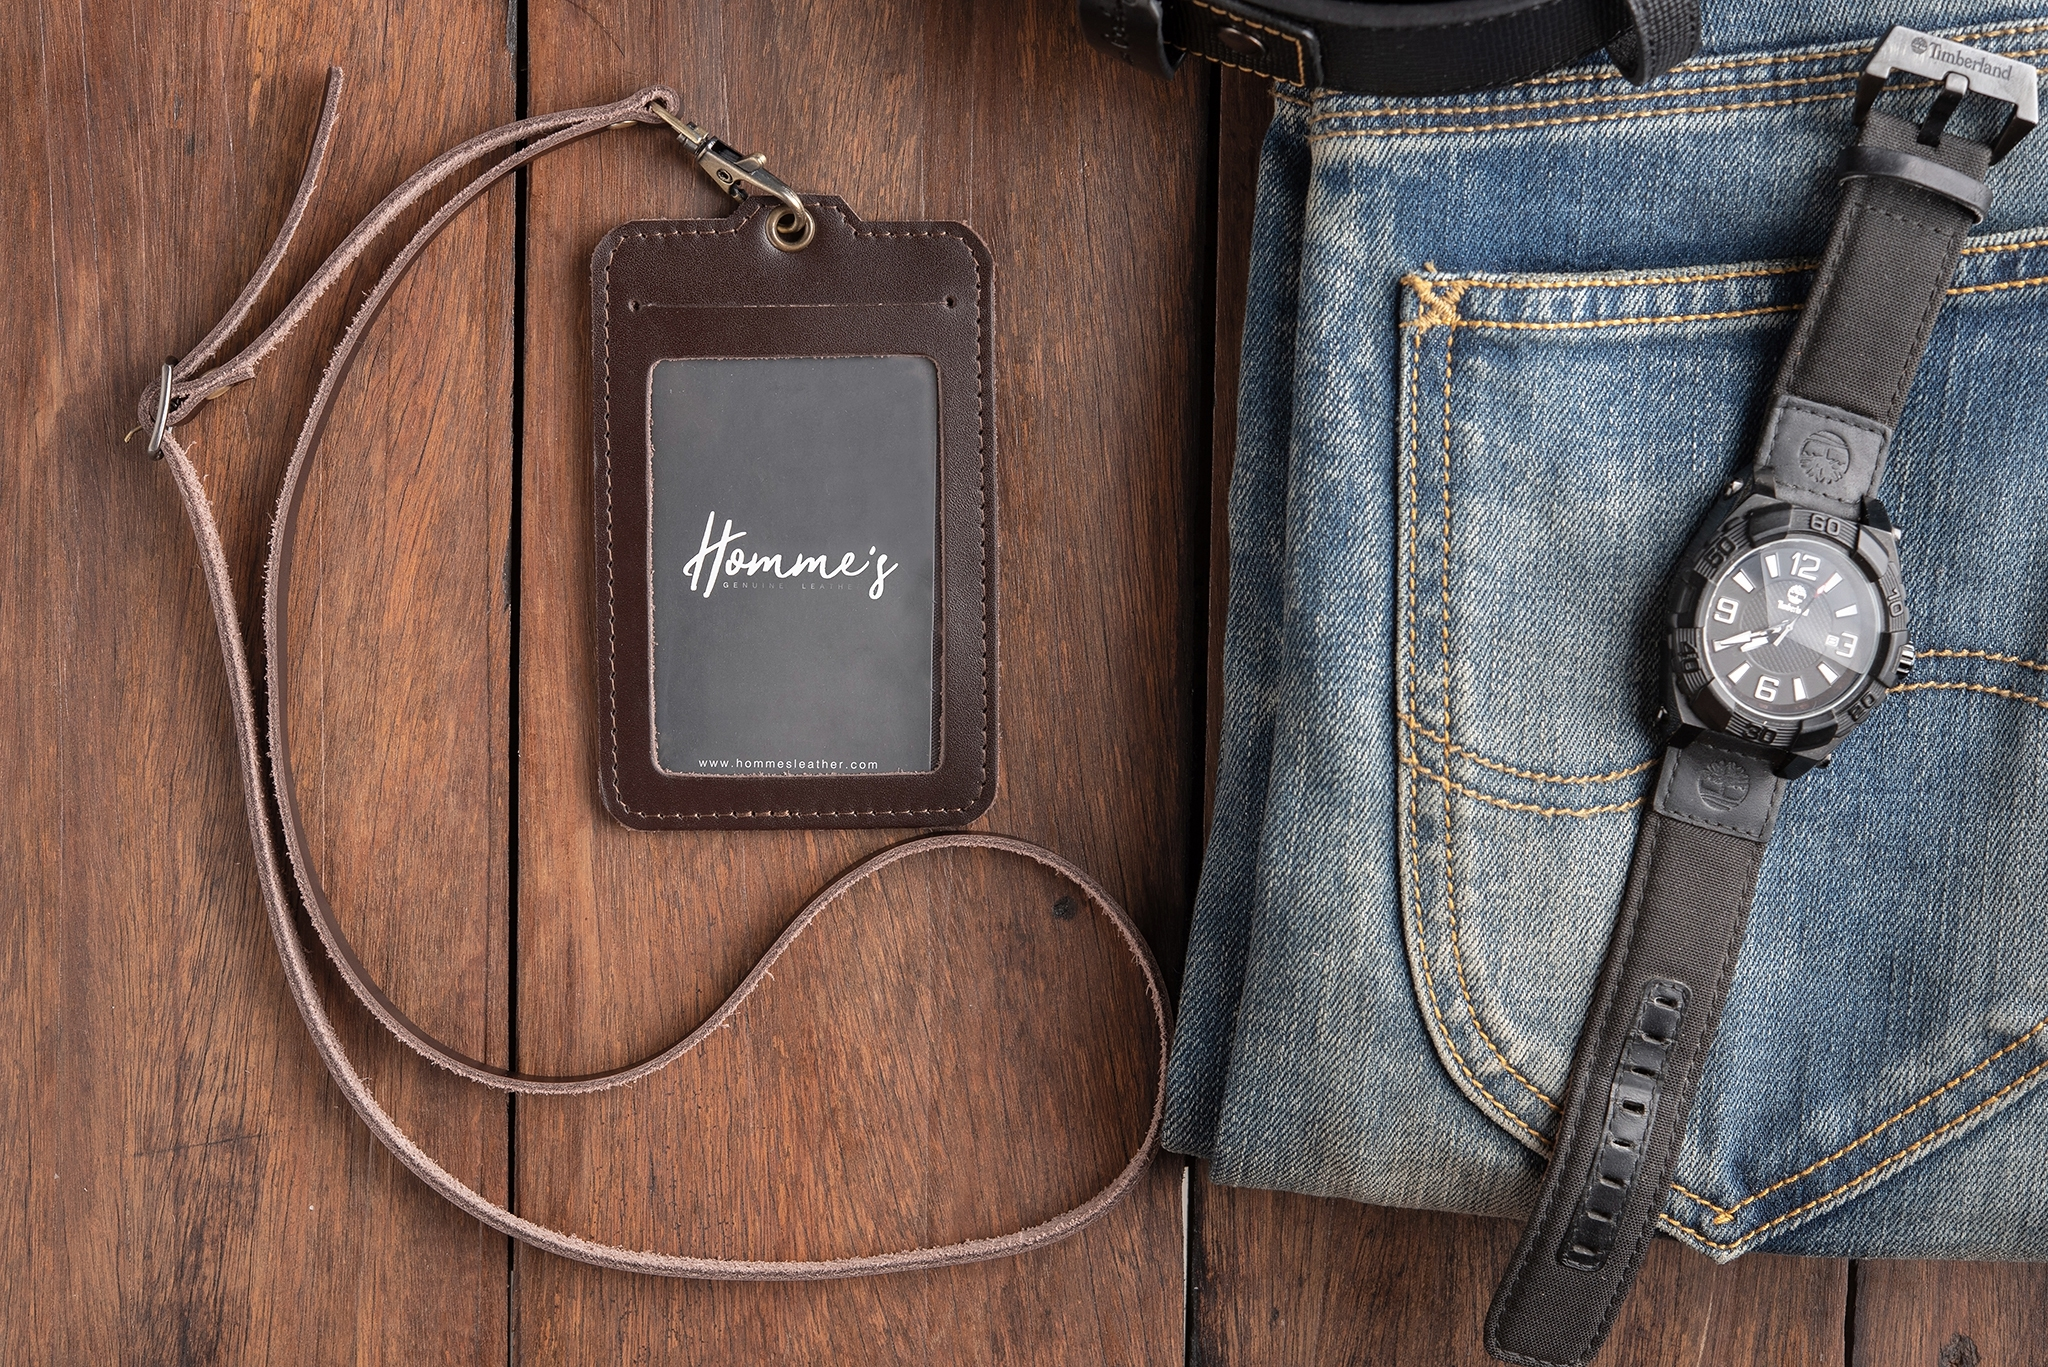 Homme's card strap- Brown